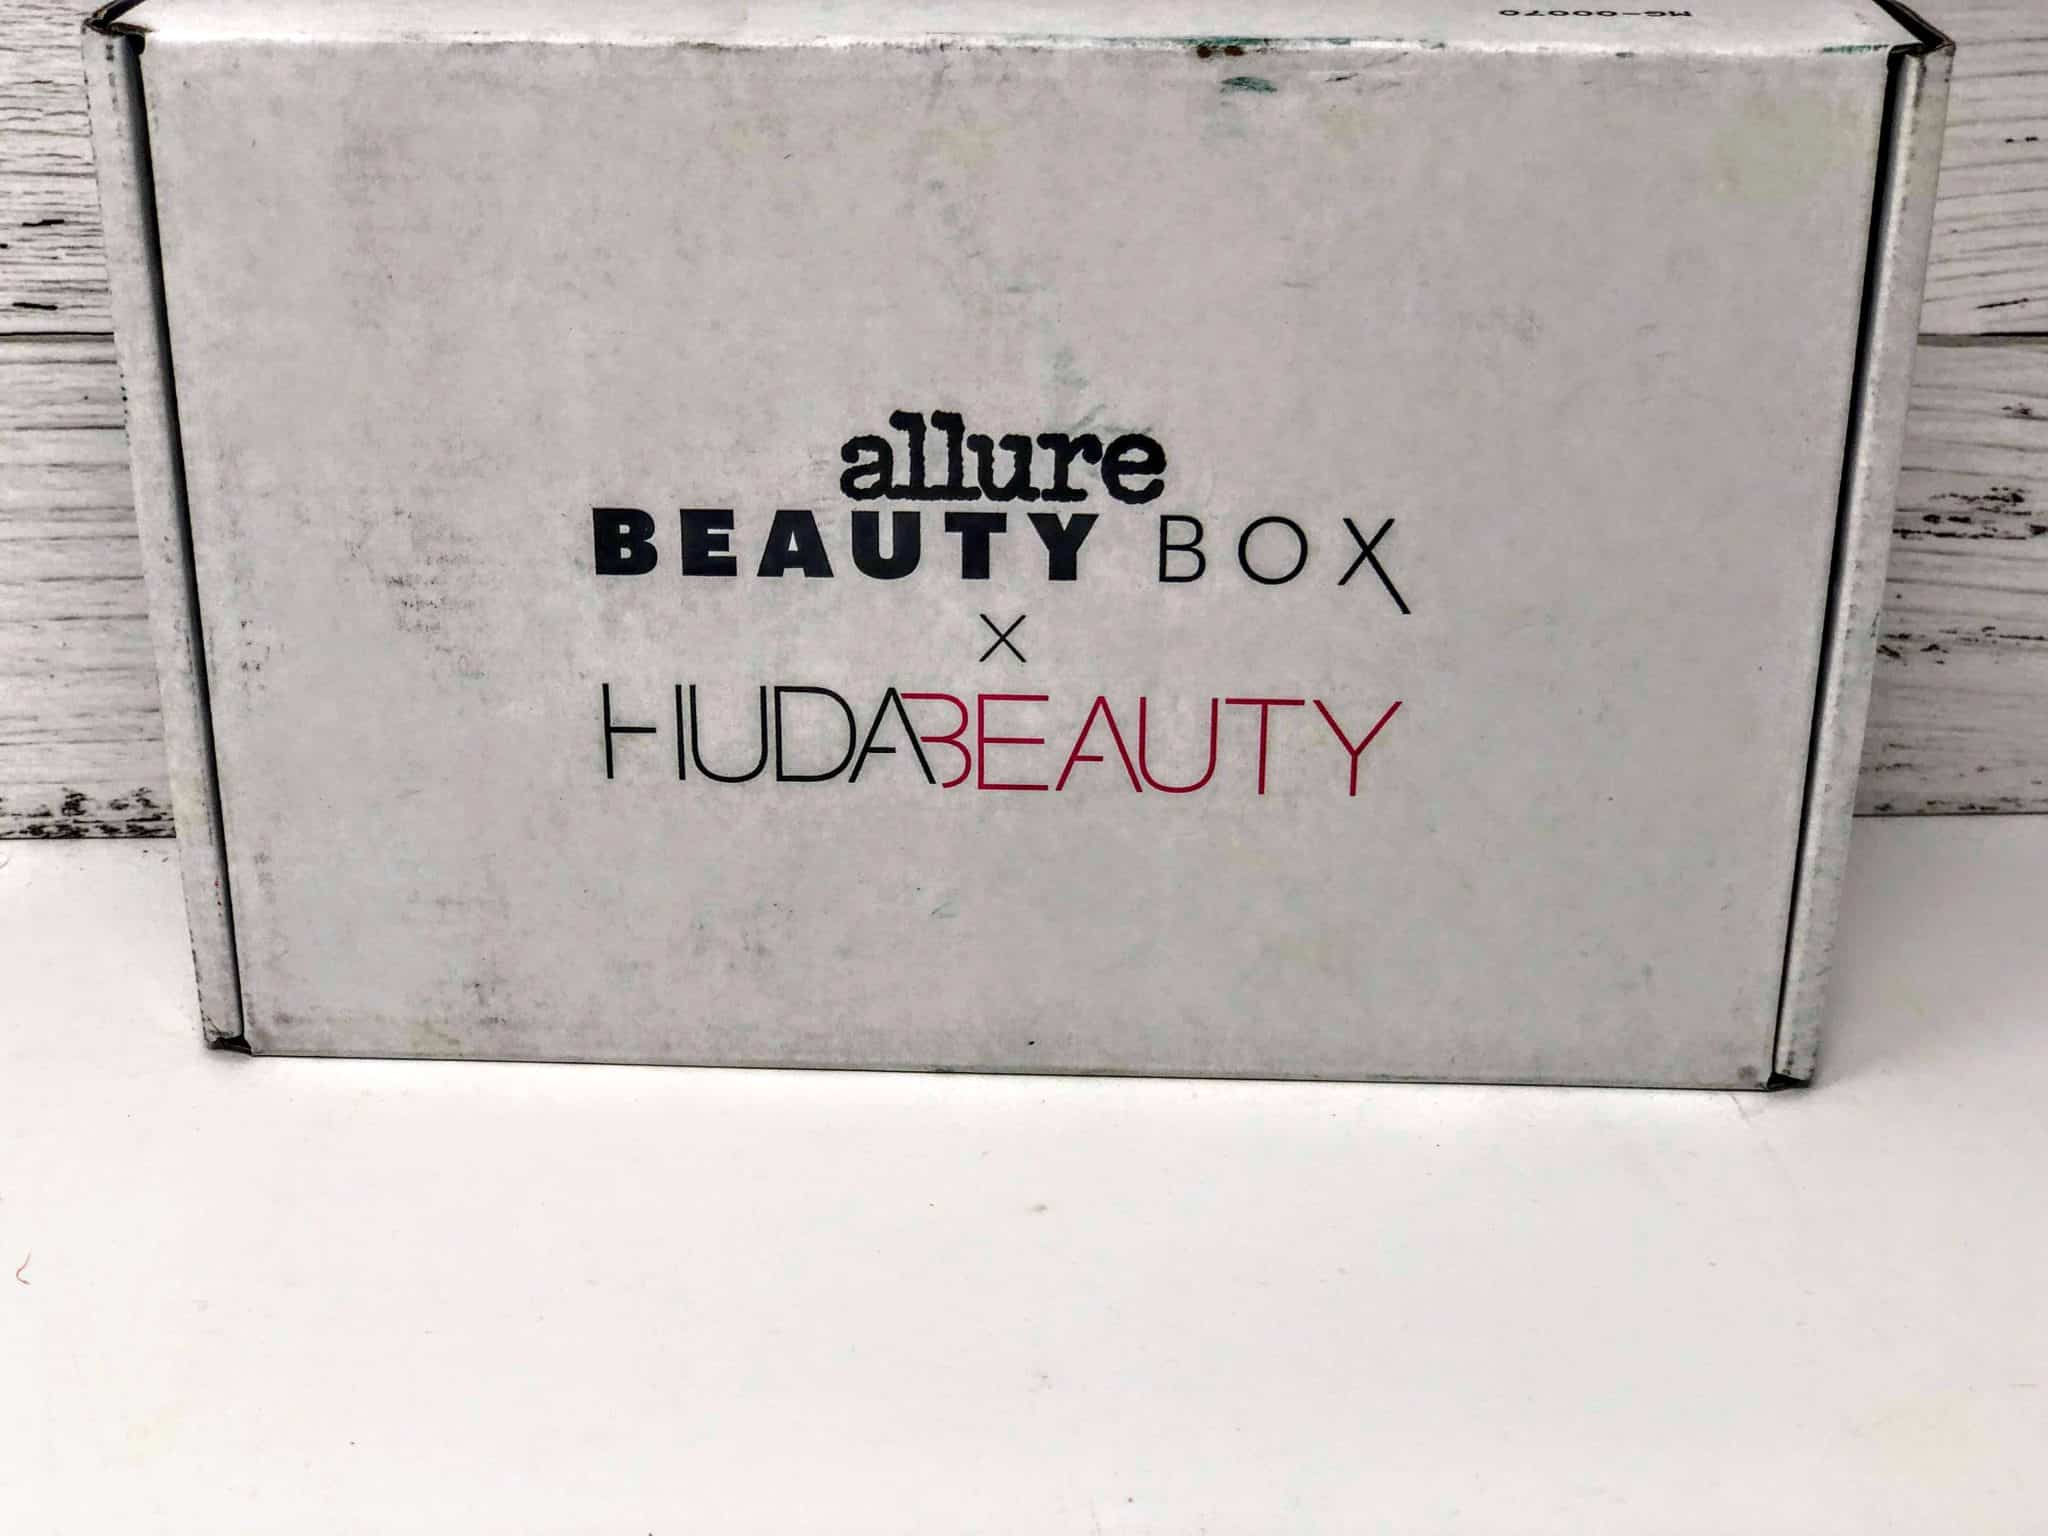 Allure Beauty Box Subscription Box Review & Unboxing & First Box $10 | July 2019